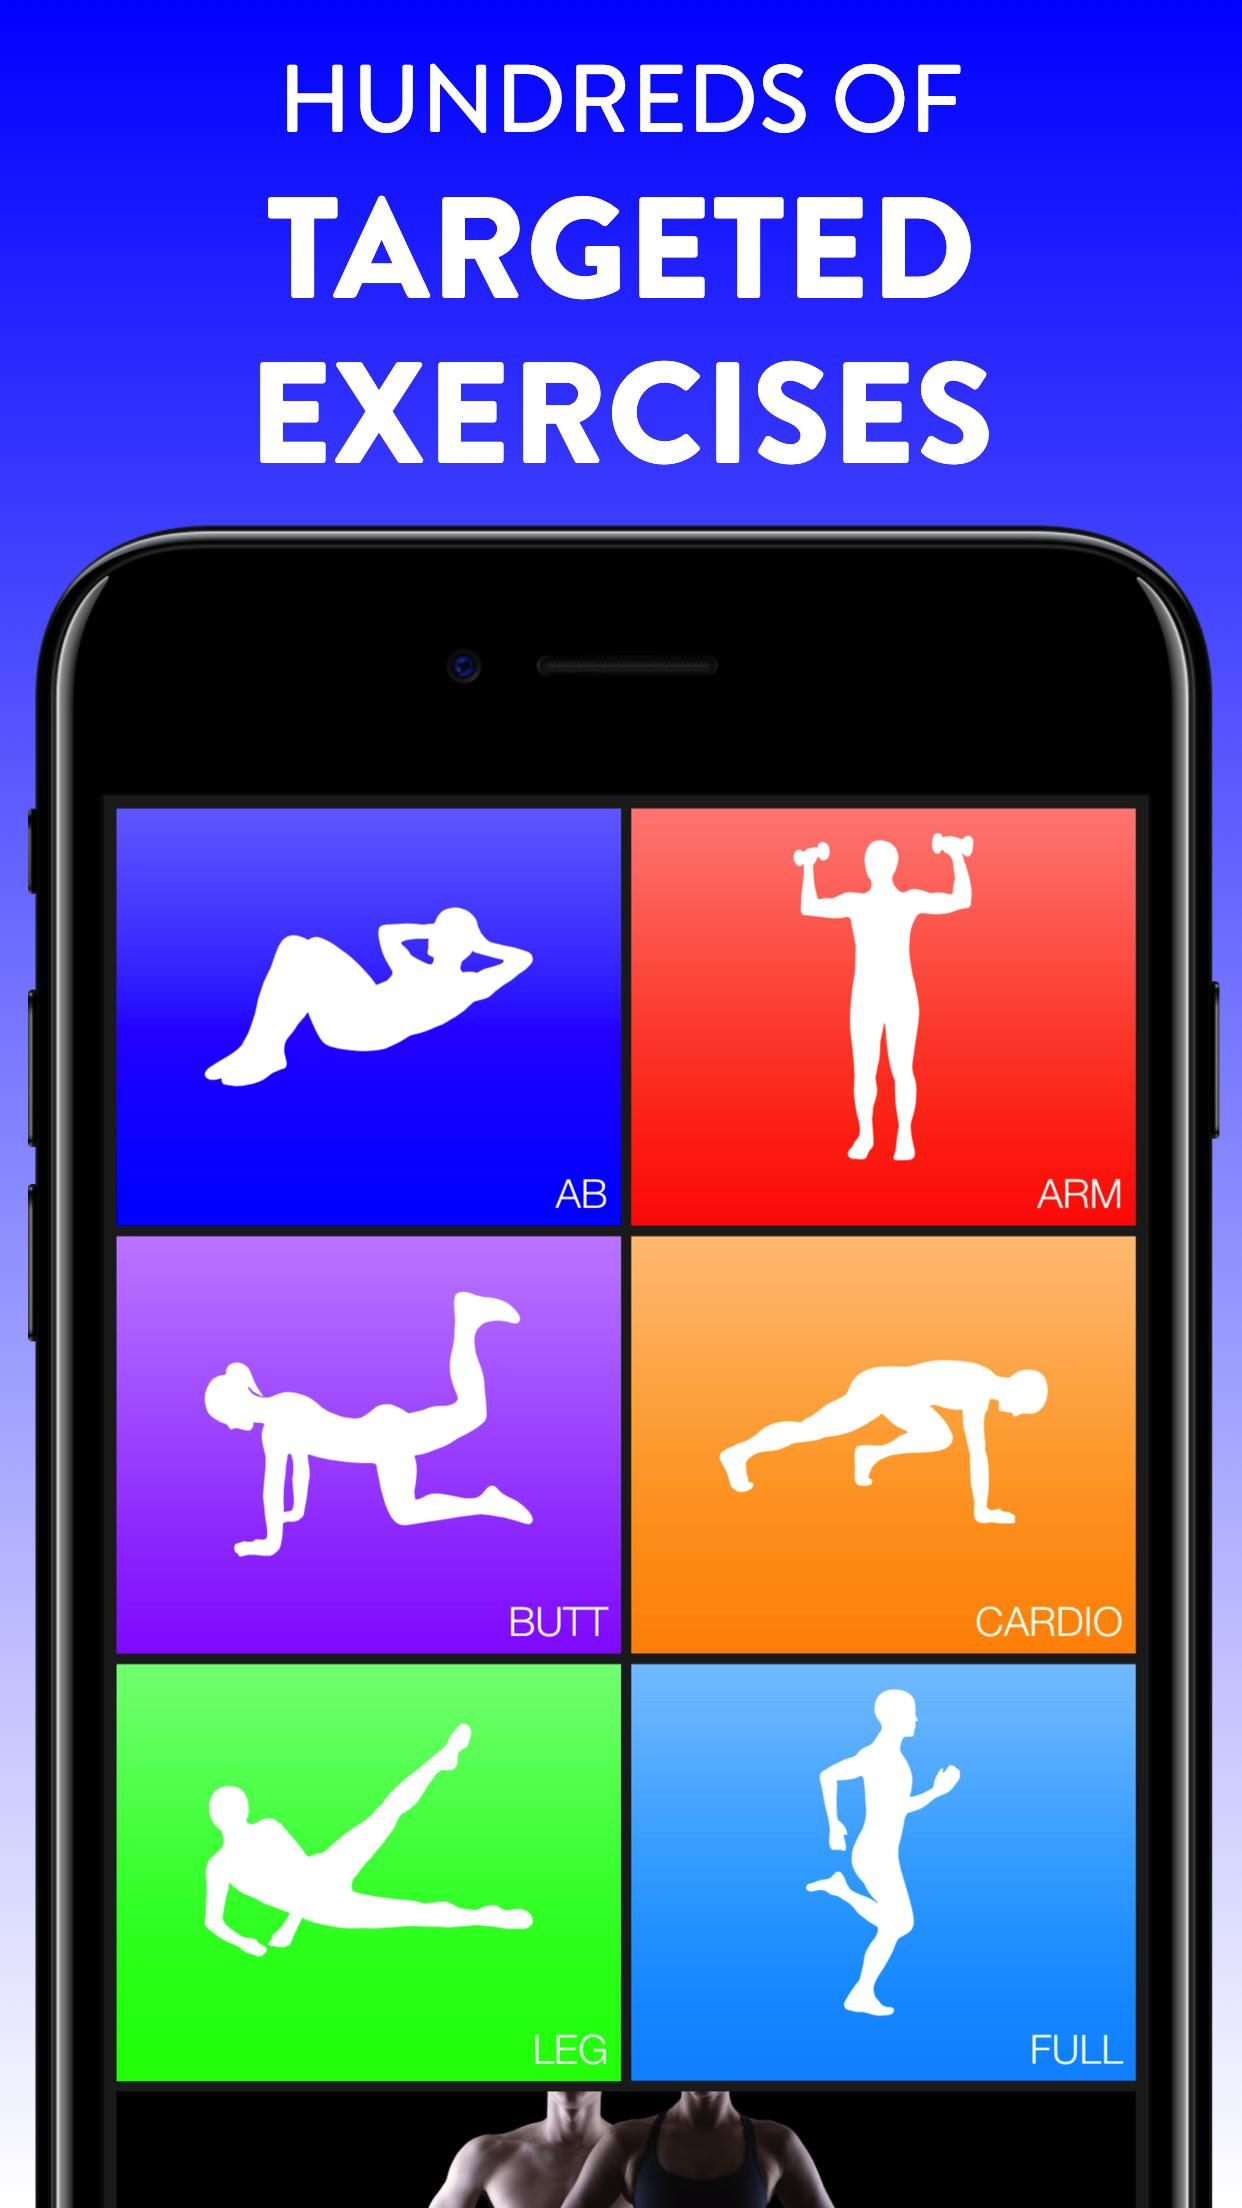 Daily Workouts - Exercise Fitness Workout Trainer 6.12 Screenshot 12